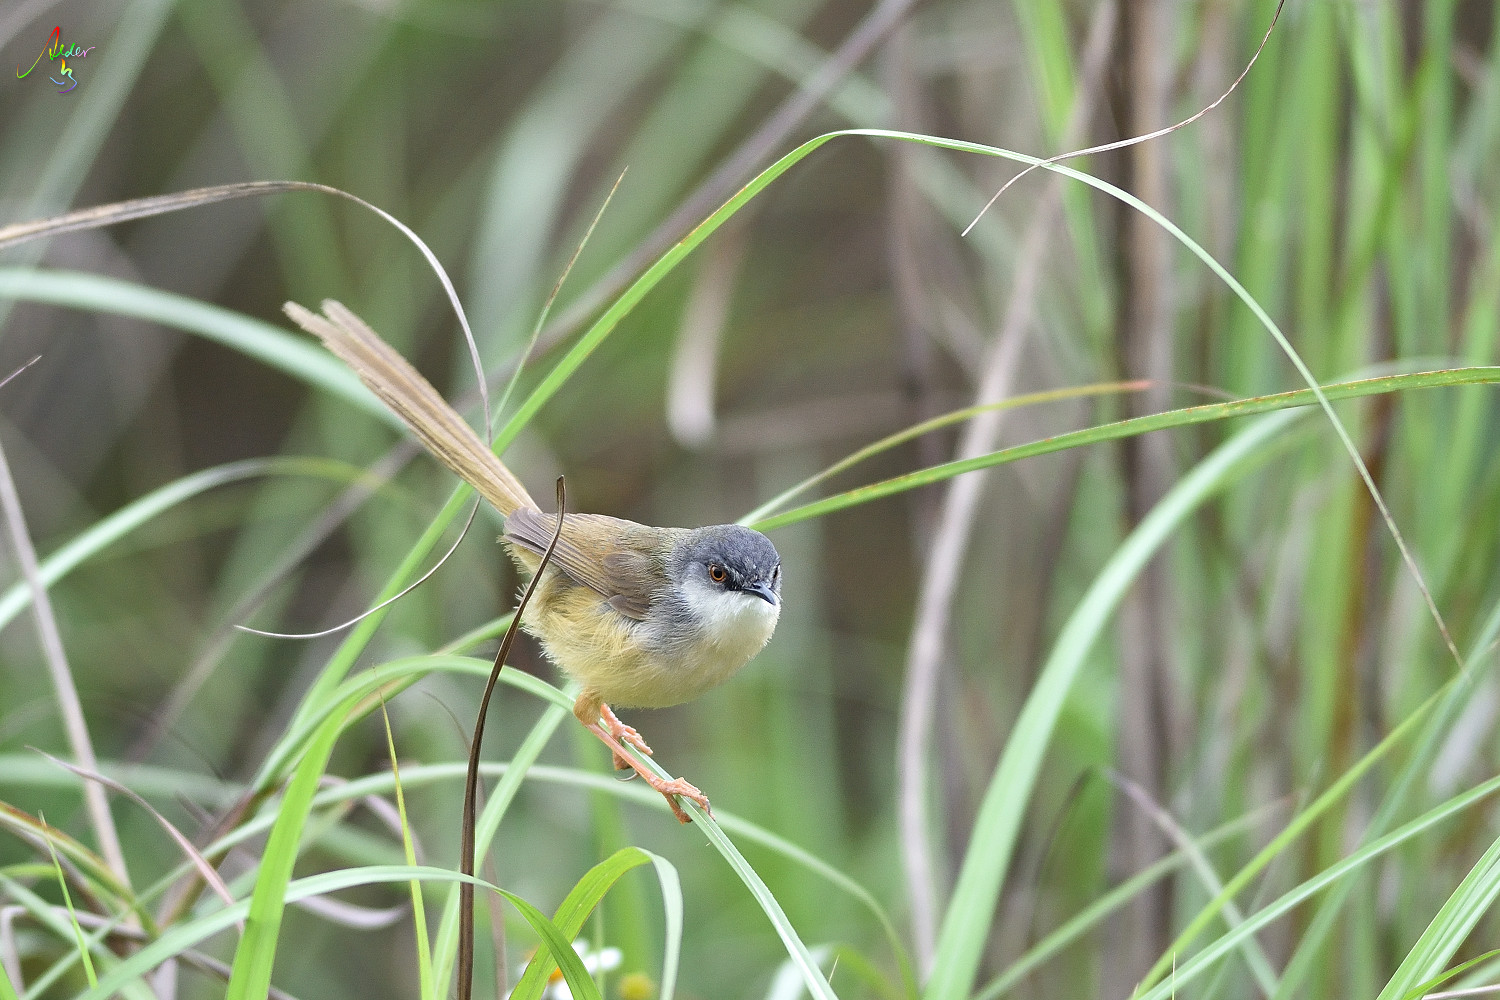 Yellow-bellied_Prinia_3639